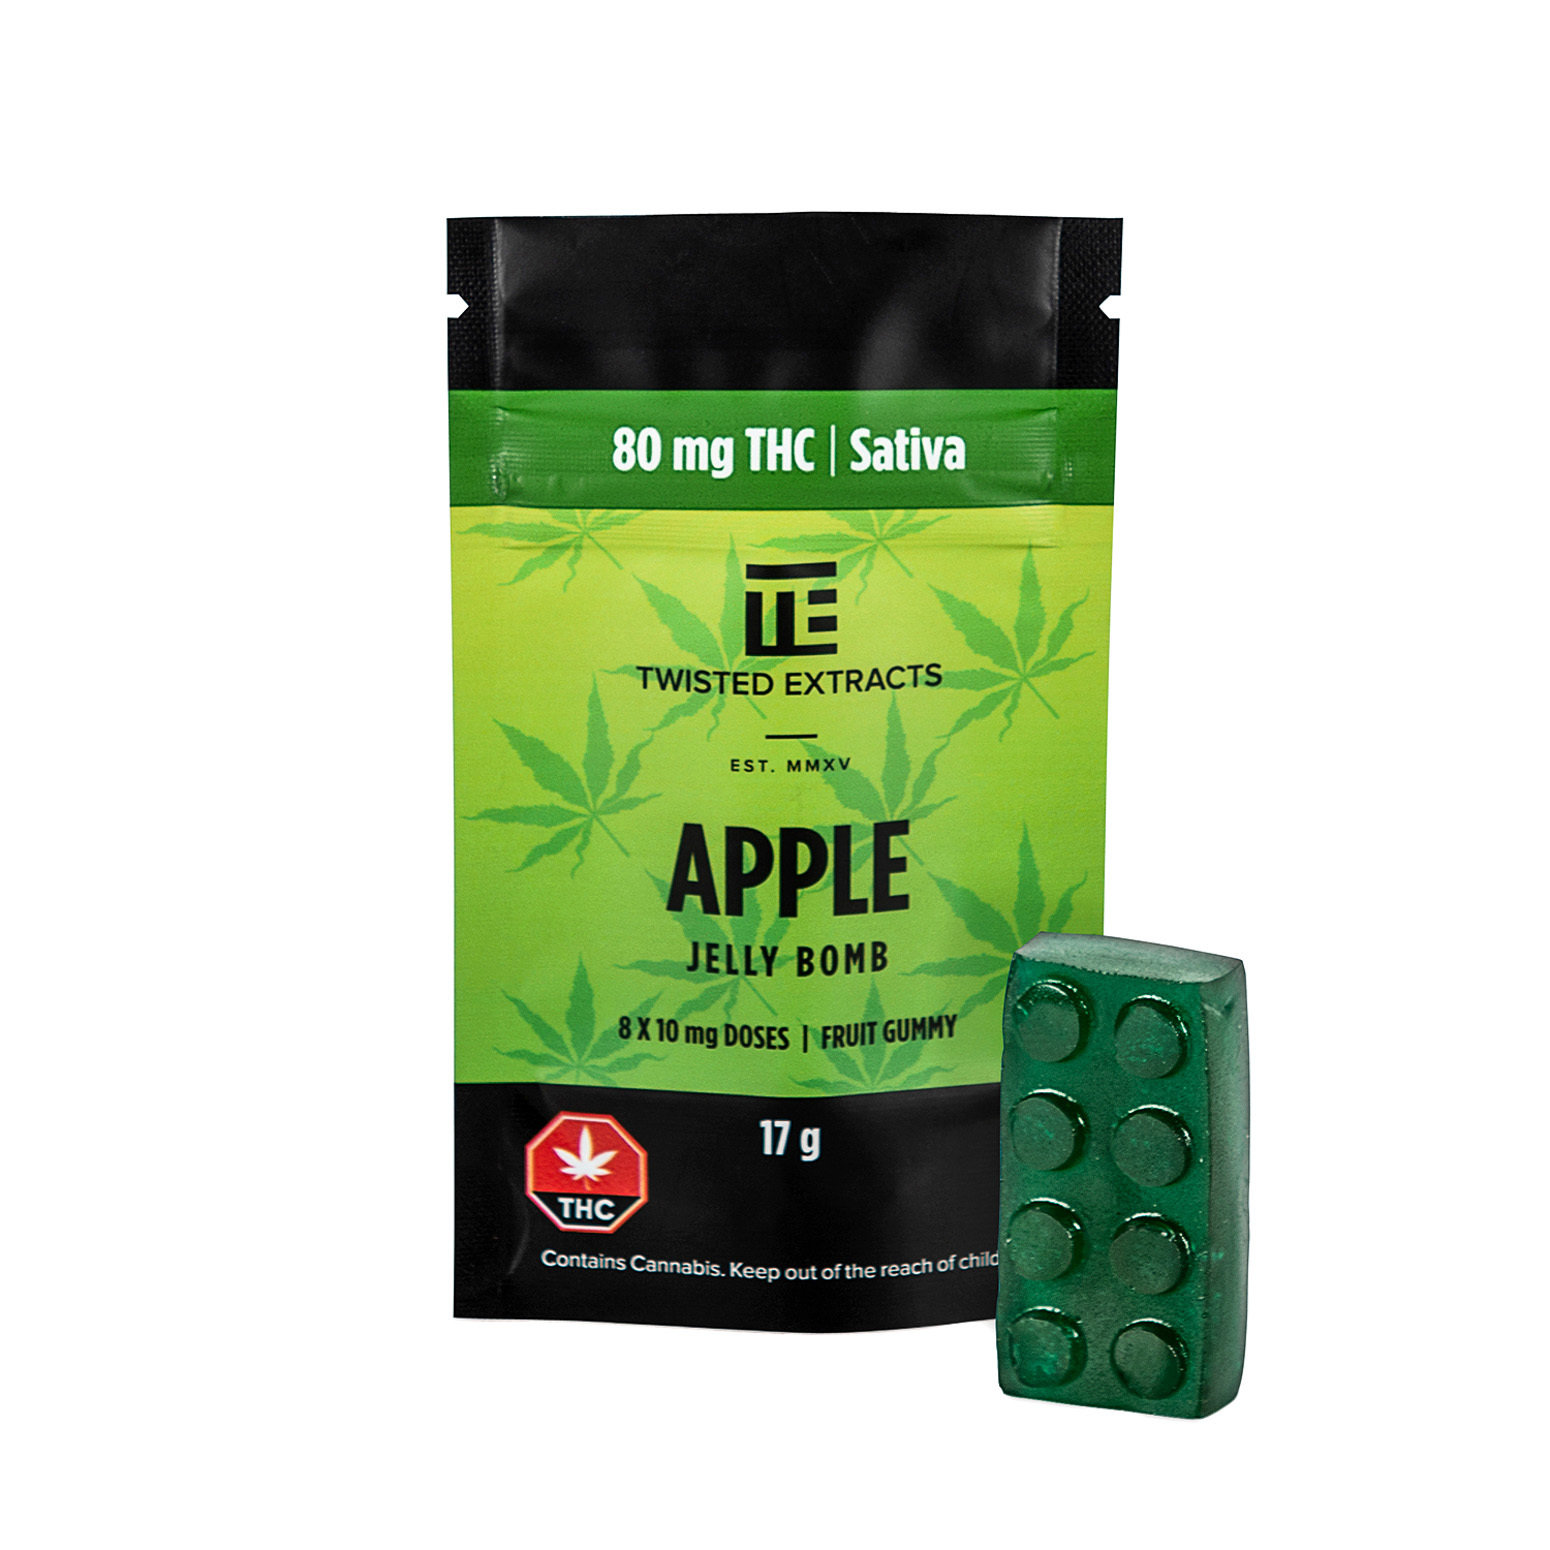 80mg THC Apple Jelly Bomb by Twisted Extracts 00005